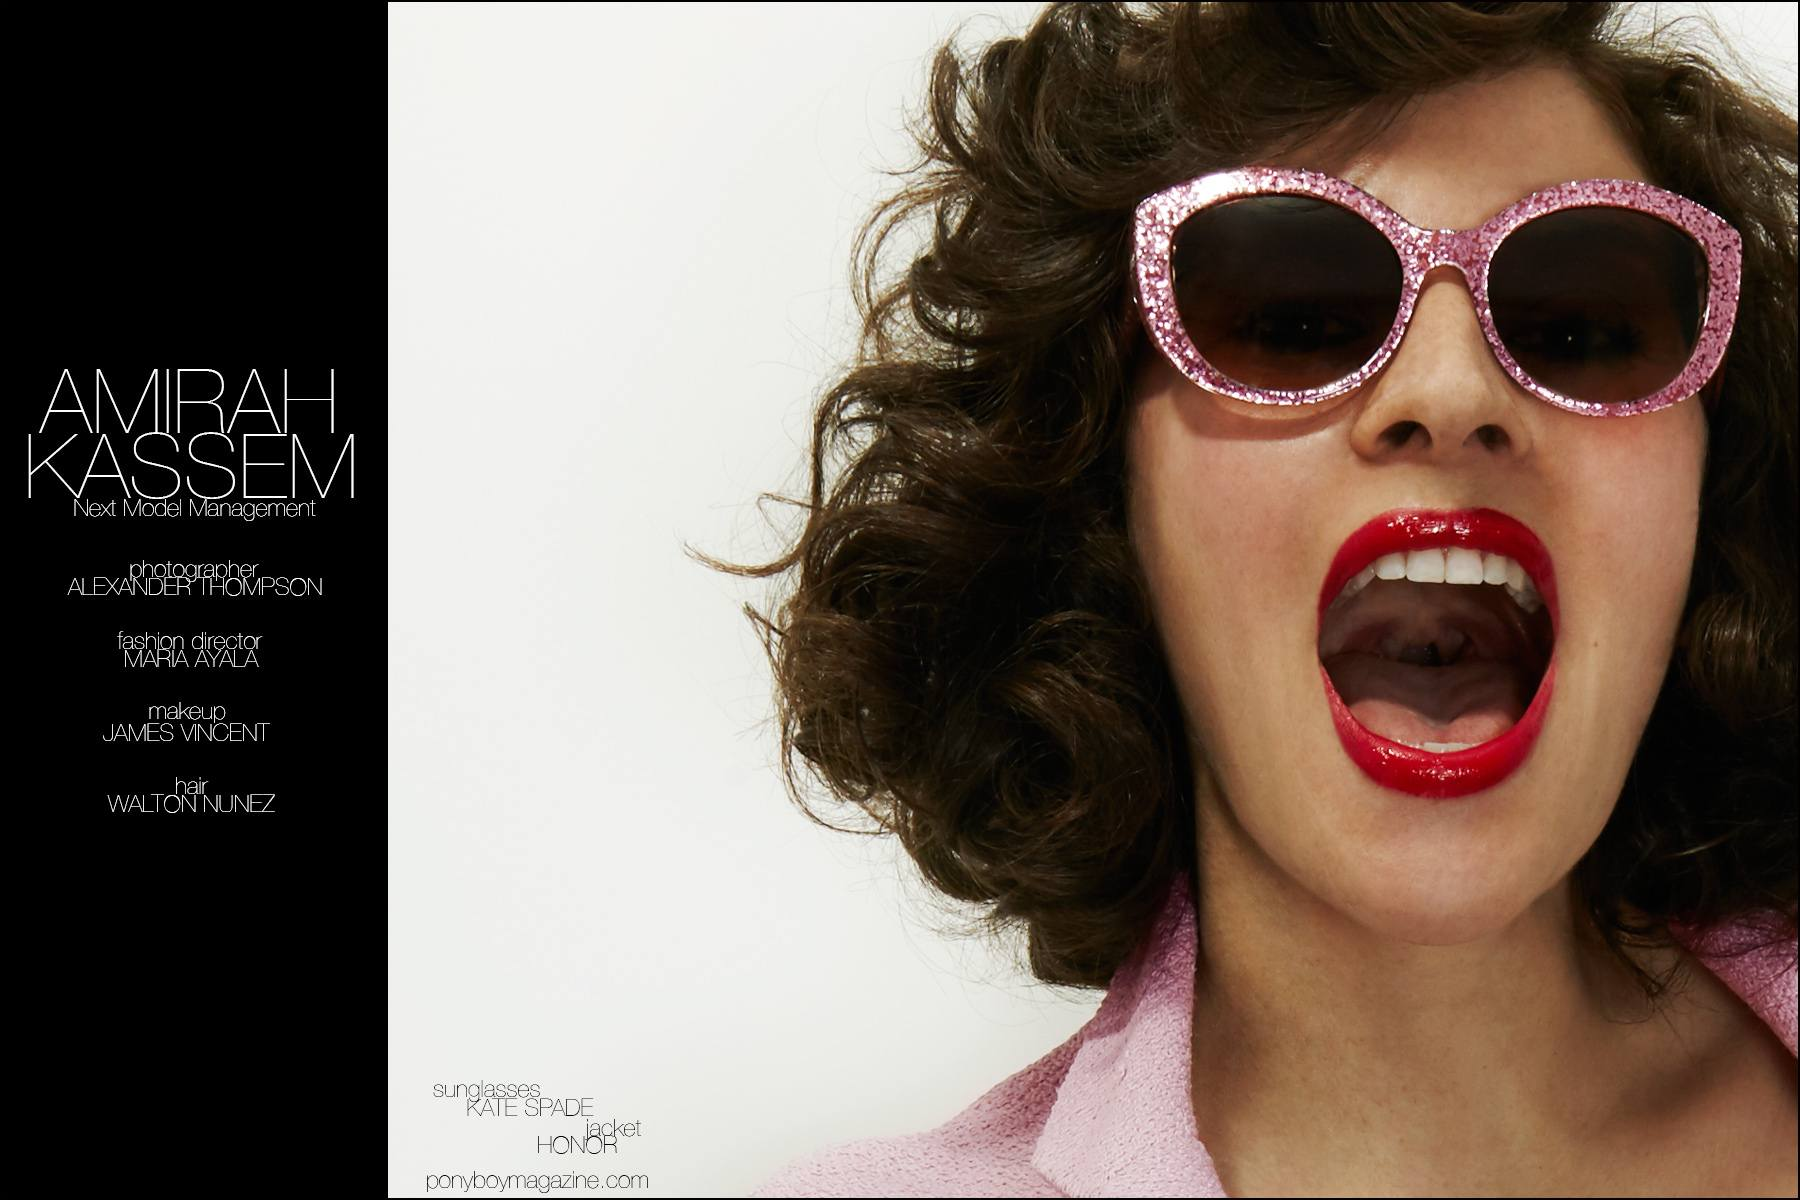 Amirah Kassem wears Kate Spade sunglasses, photographed by Alexander Thompson for Ponyboy magazine New York.